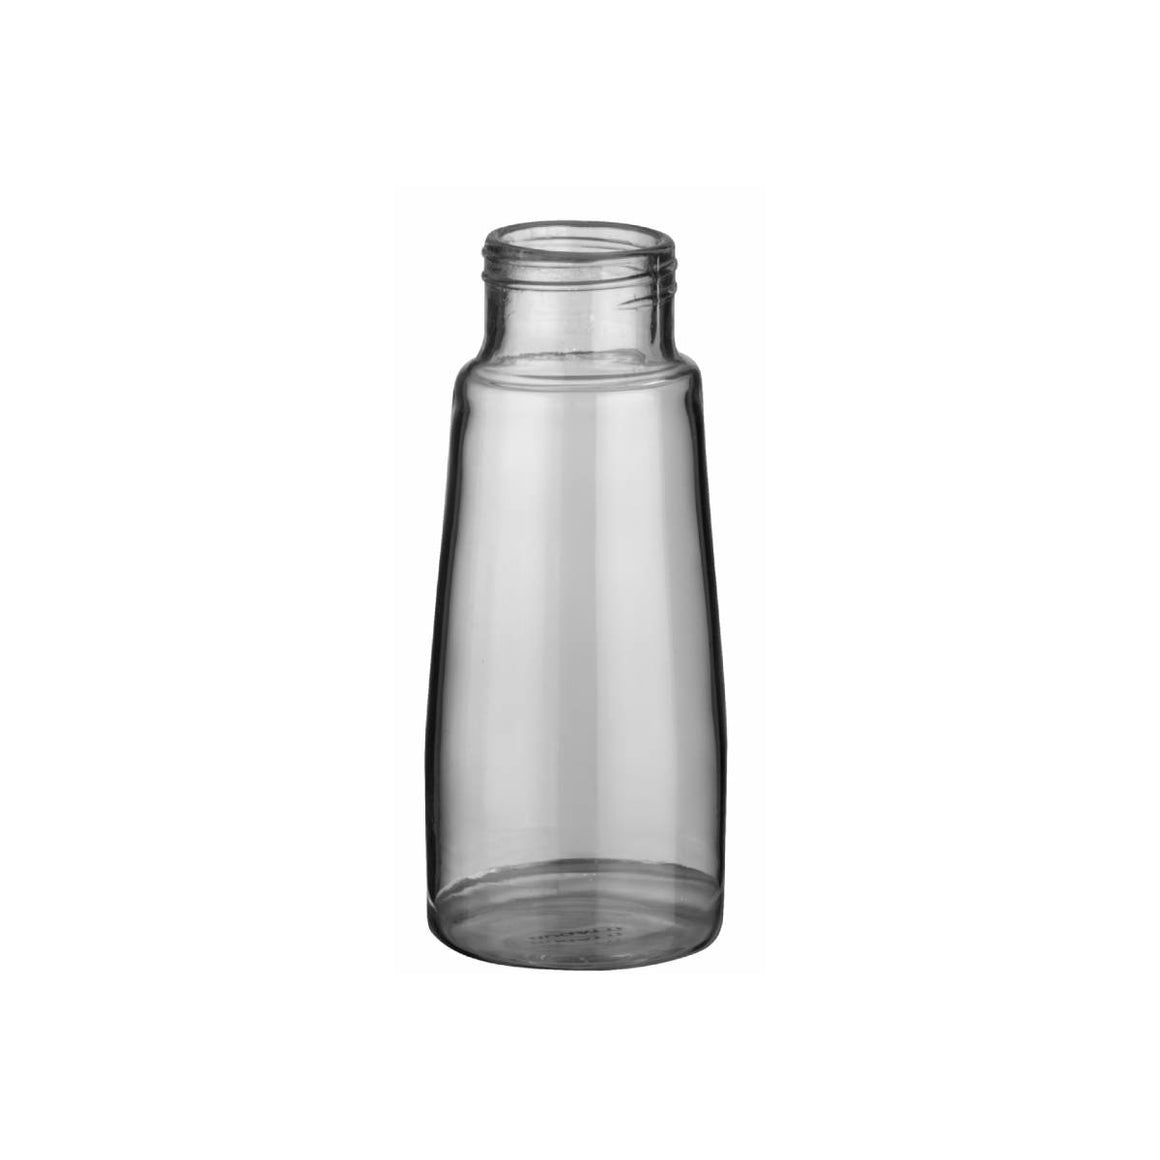 SPARE SALT BOTTLE FOR ACQUA & TRATTORIA CRUIET SET